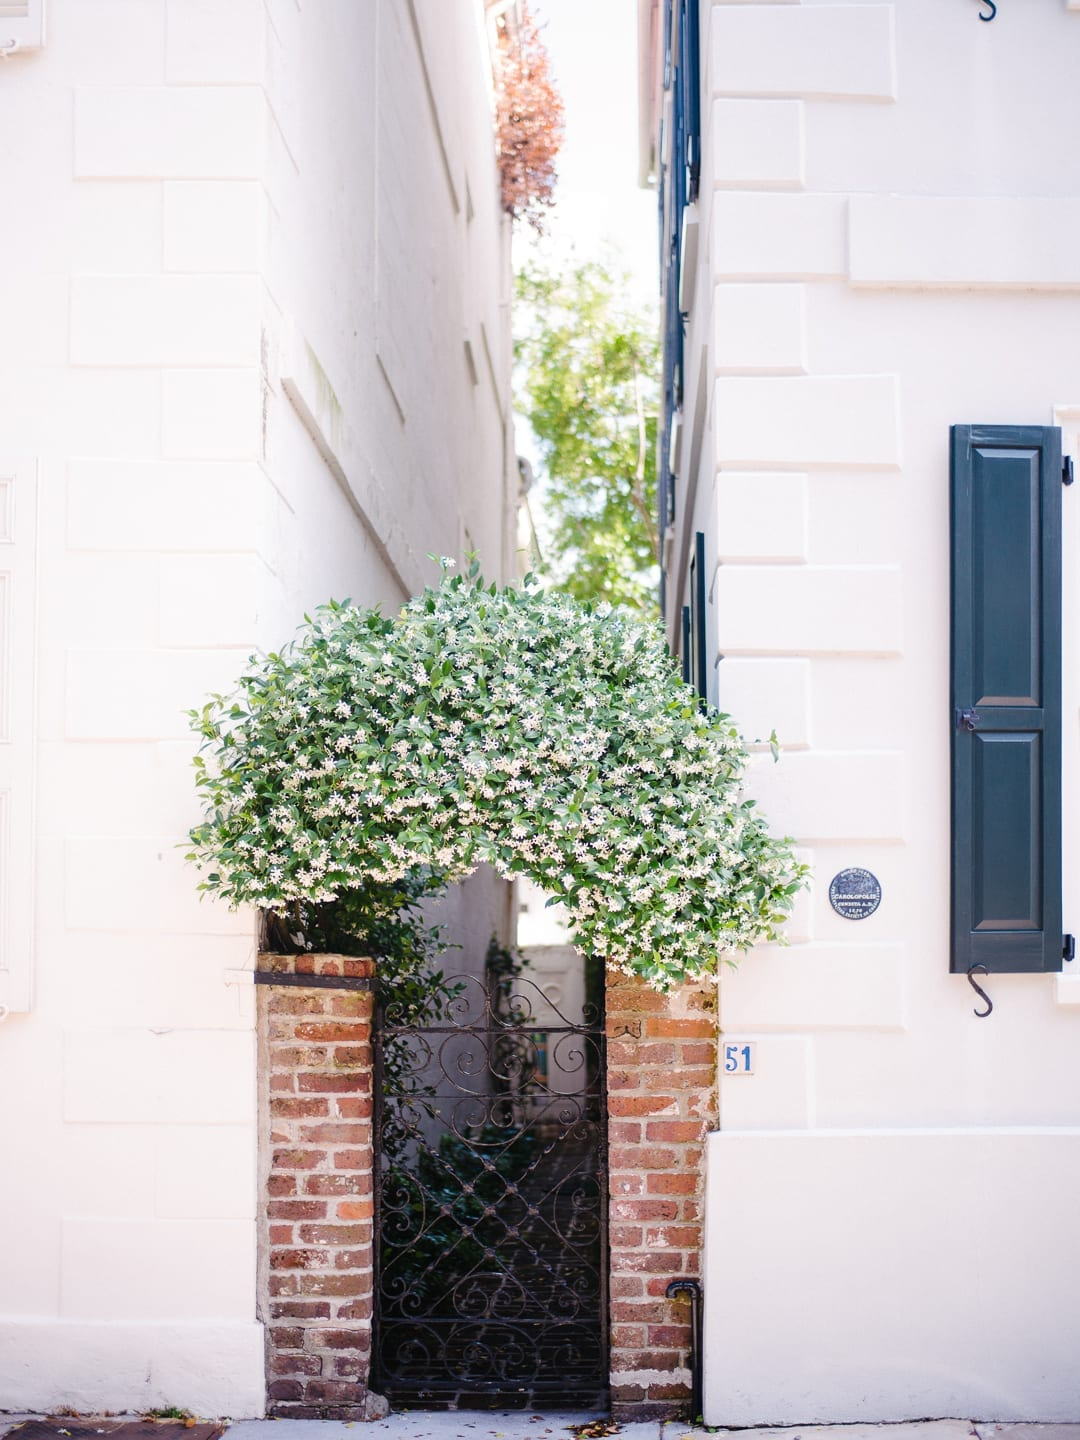 charleston gate covered in jasmine